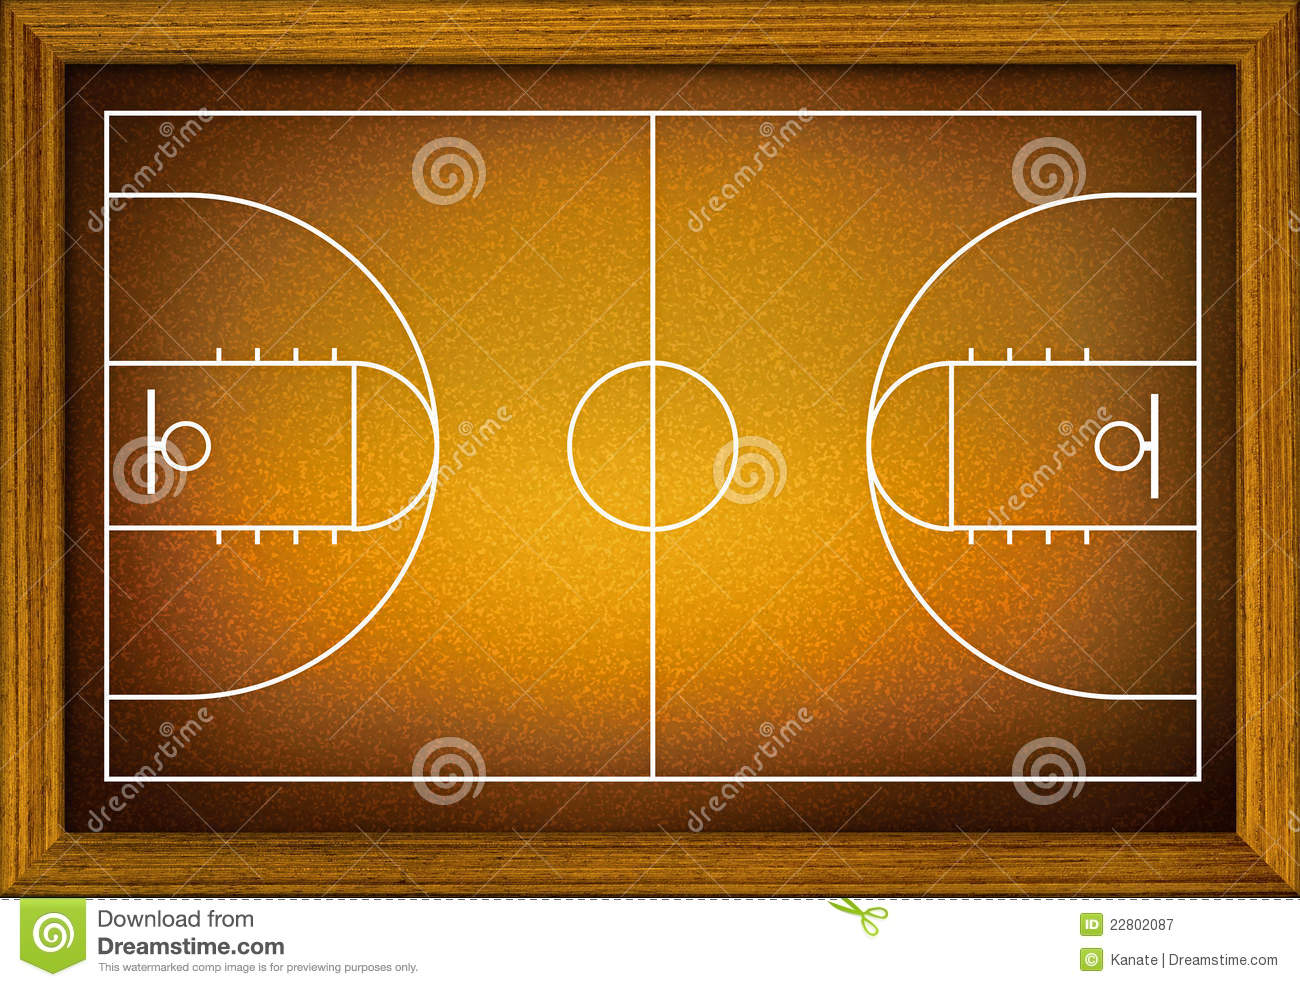 Of Basketball Court In The Wooden Frame Mr No Pr No 2 500 1